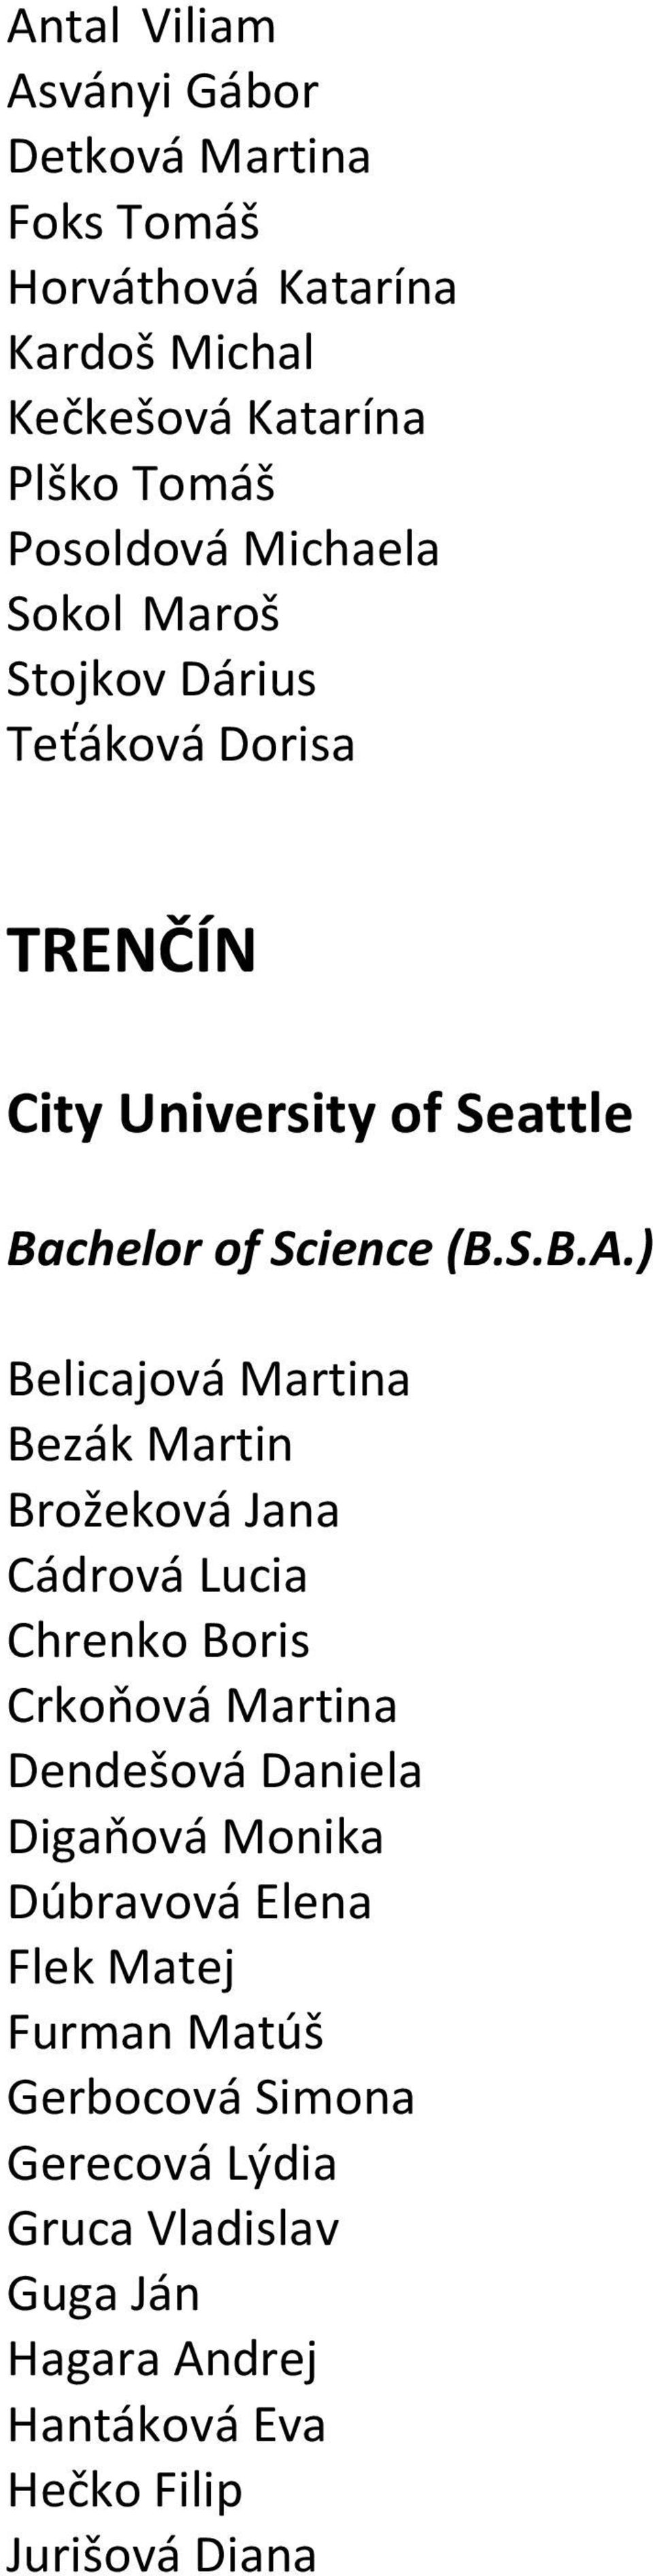 Bratislava City University Of Seattle Bachelor Of Science Images, Photos, Reviews